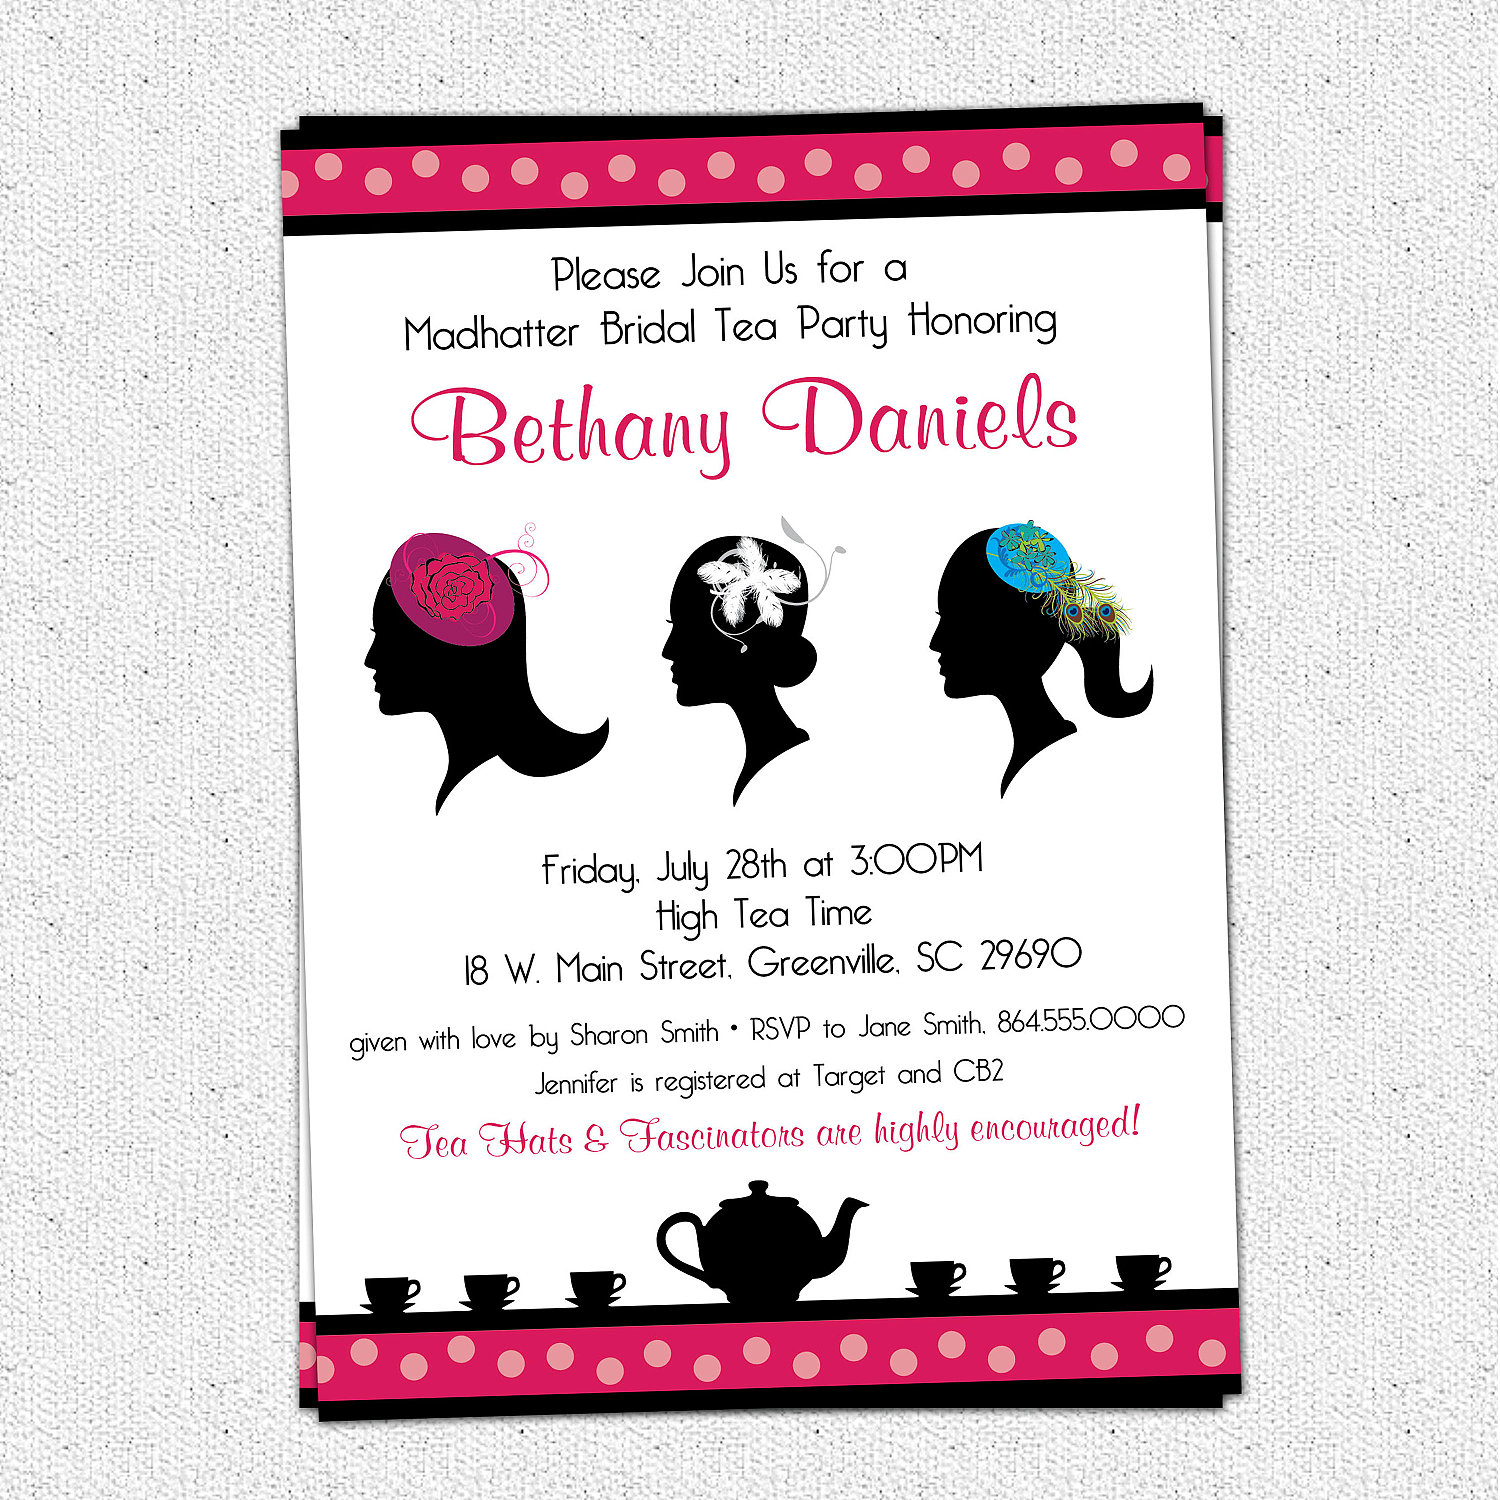 Madhatter Mad Hatter Tea Party Invitations Fascinator, Hats, Royalty ...